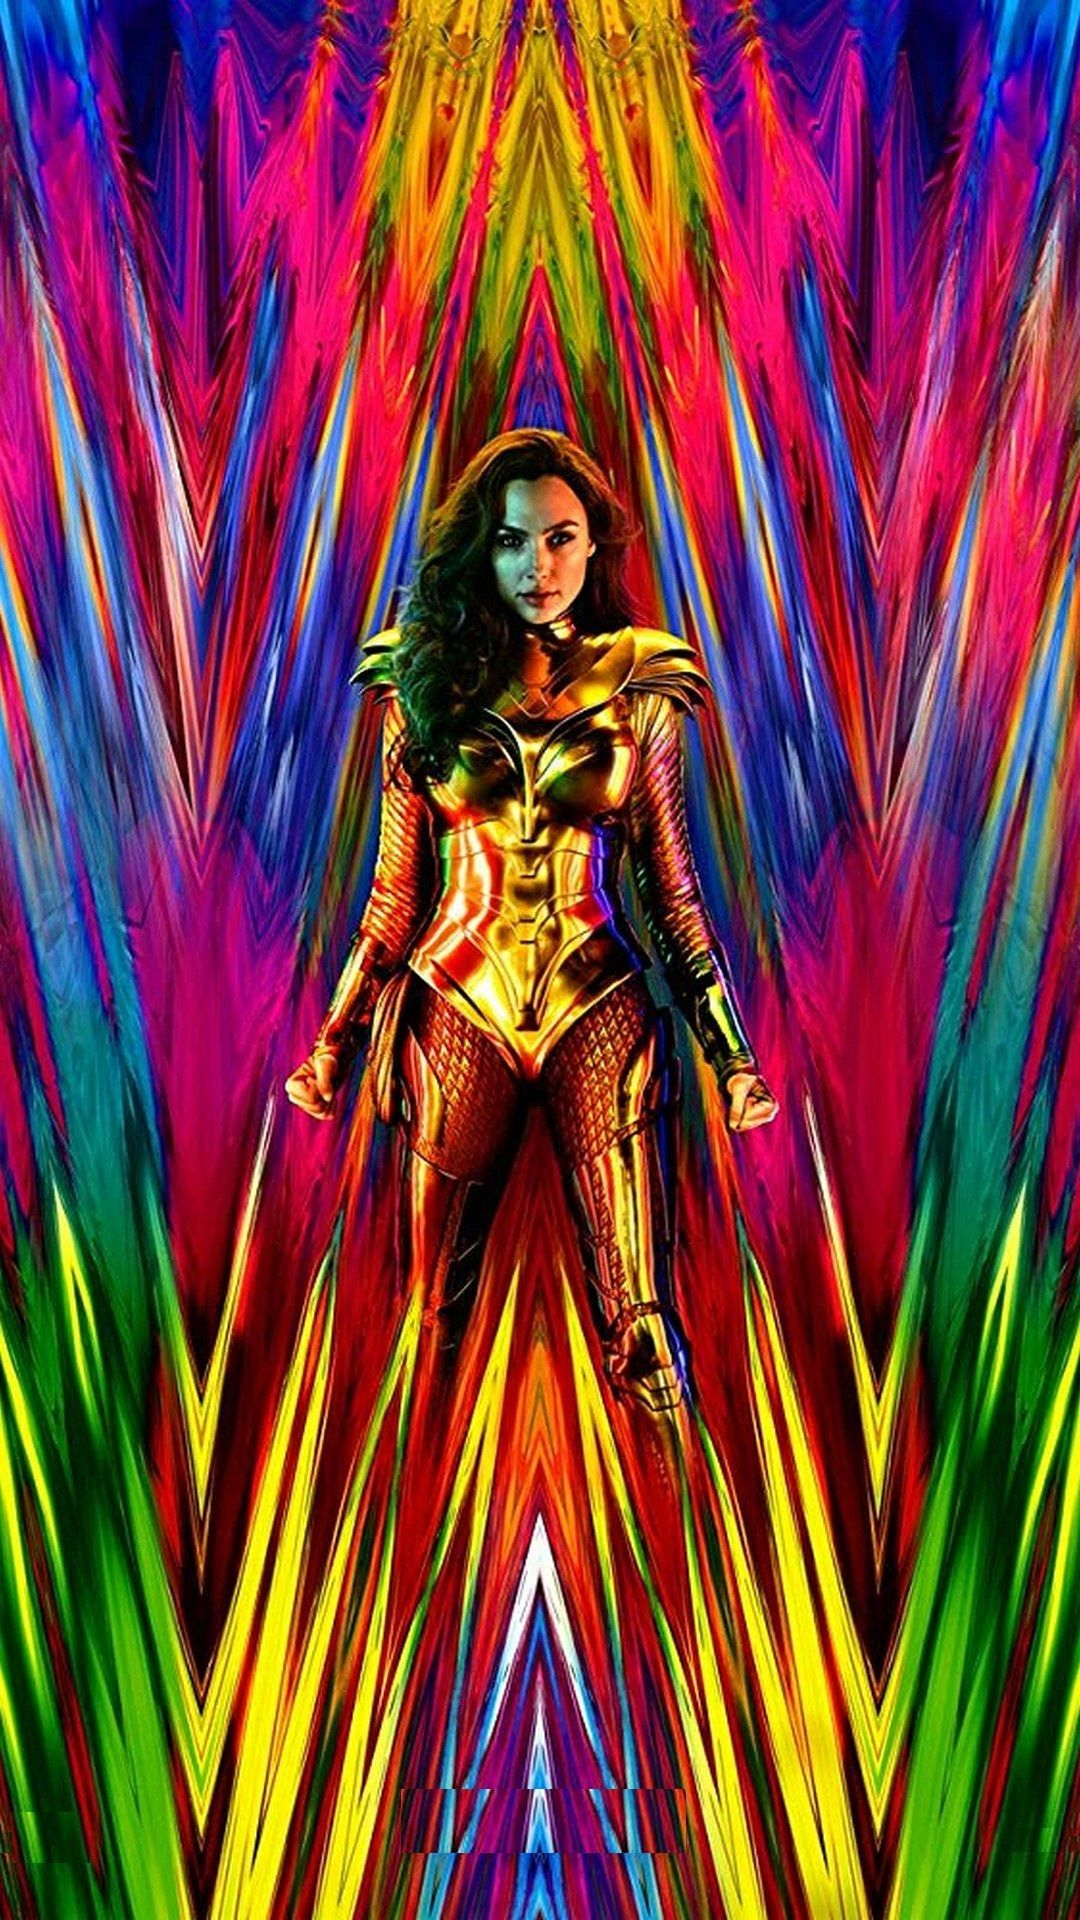 Wonder Woman 1984 Poster Hd Best Movie Poster Wallpaper Hd Blog Do Armindo In 2020 Best Movie Posters 1984 Movie Full Movies